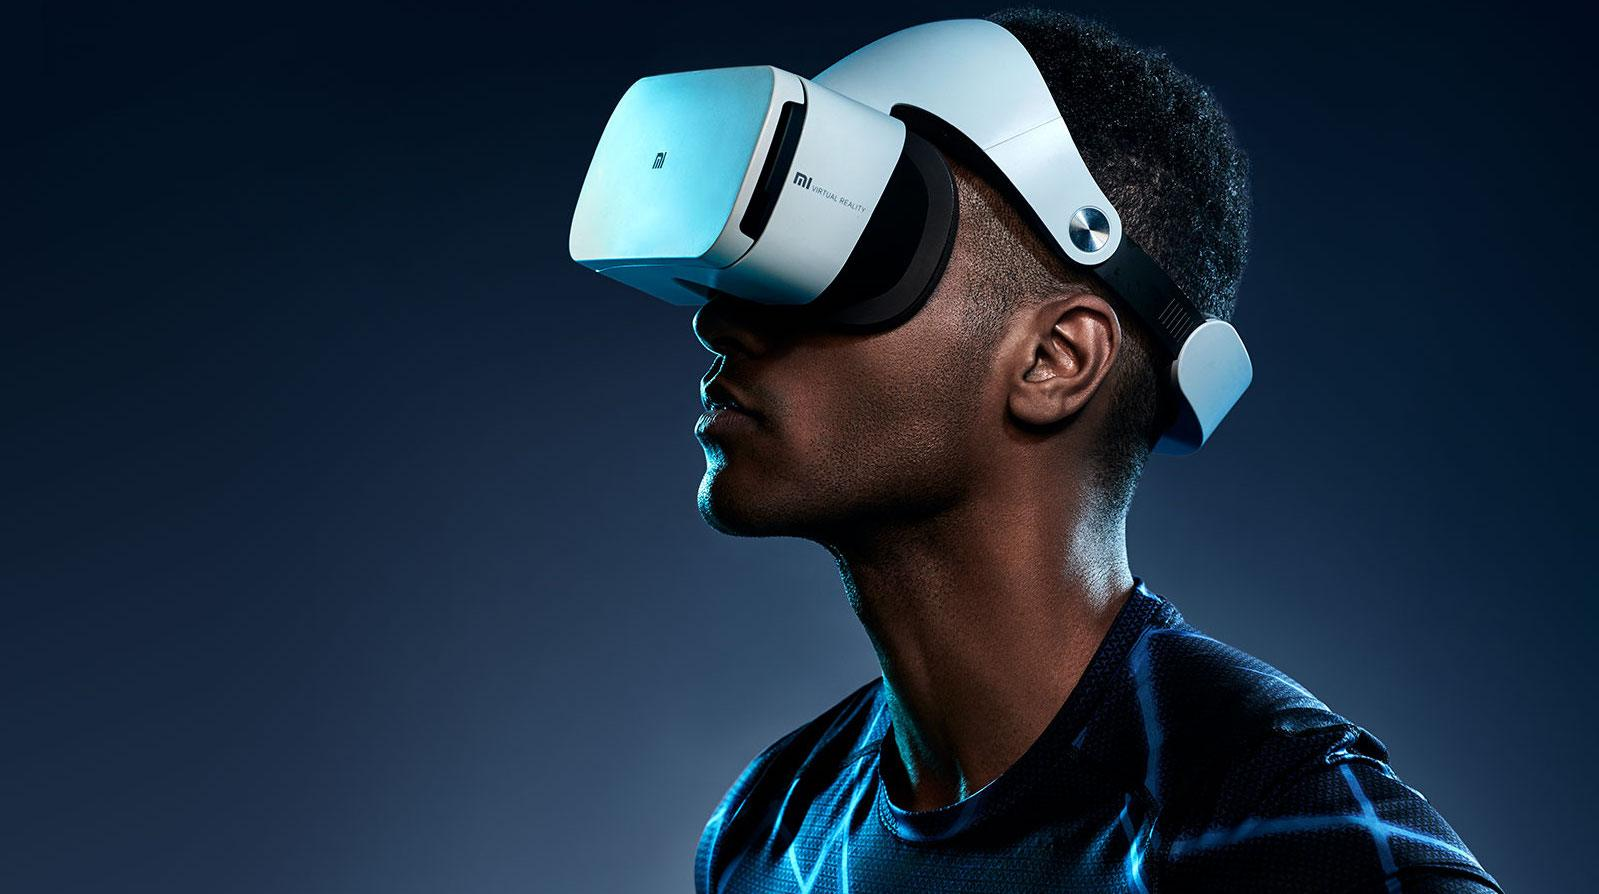 A guy wearing a VR headset in a stock photo.